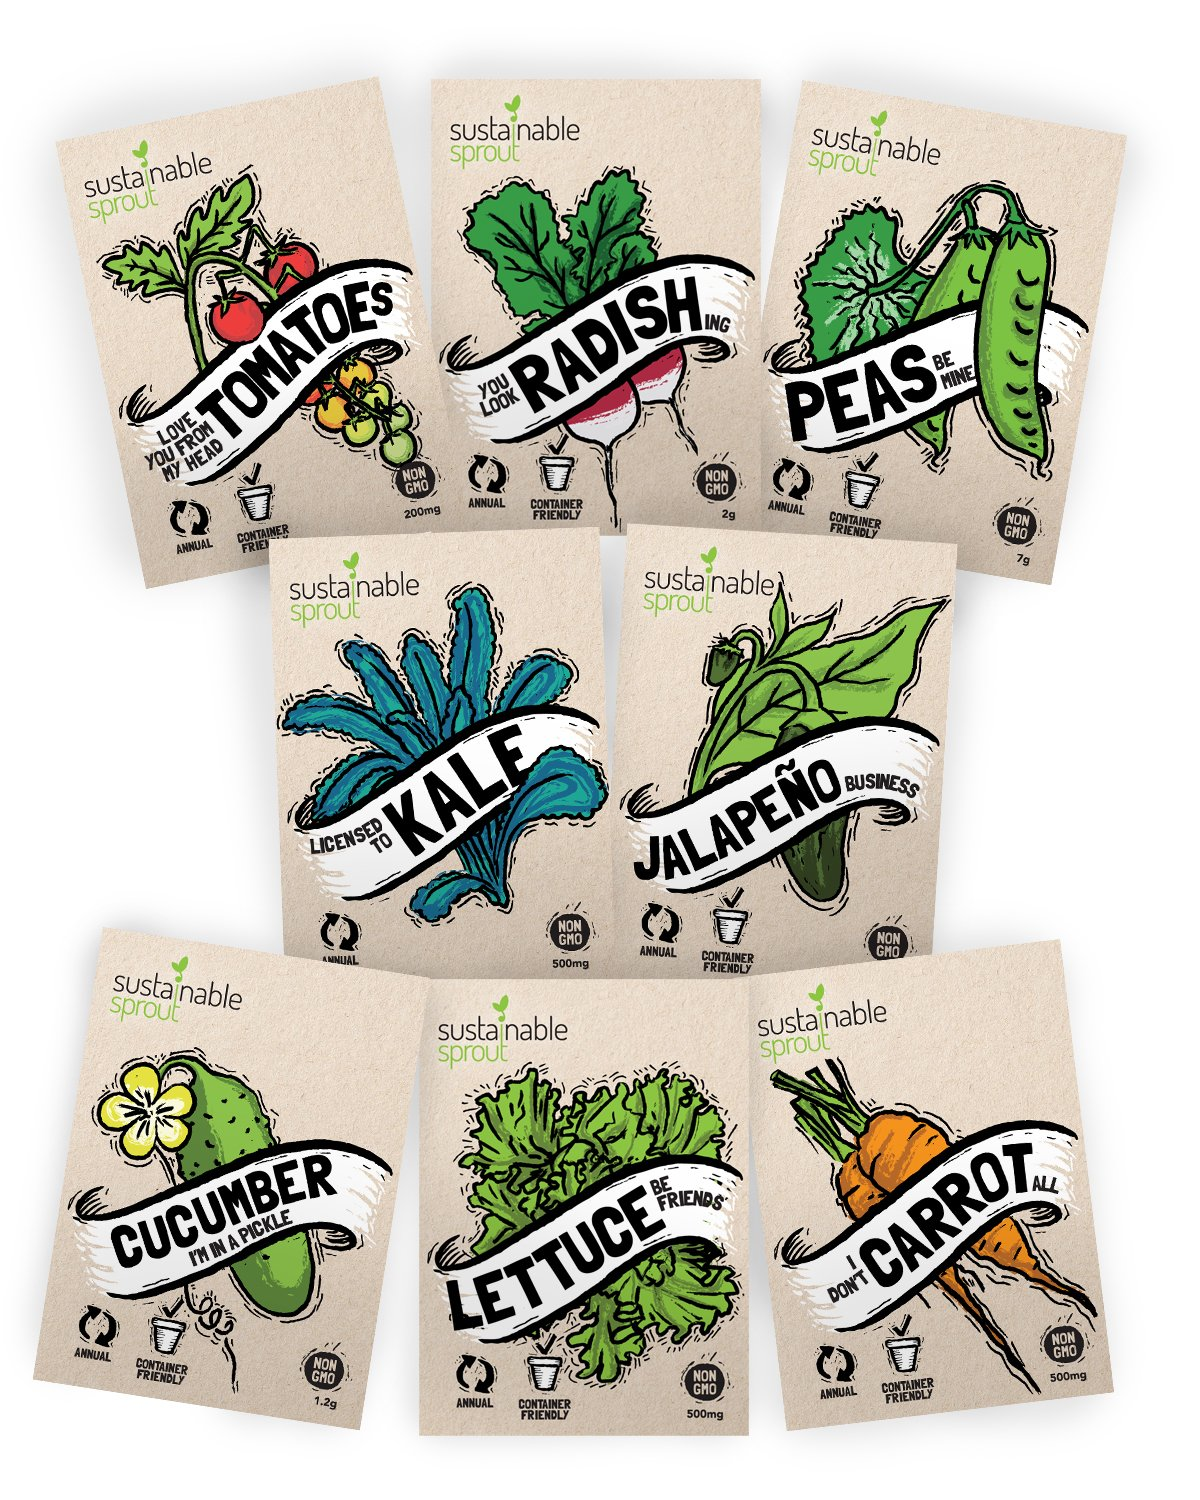 Vegetable Seeds Heirloom''SillySeed'' Collection - 100% Non GMO. Veggie Garden Variety Pack: Tomato, Cucumber, Lettuce, Kale, Radish, Peas, Carrot, Jalapeno Pepper by Sustainable Sprout